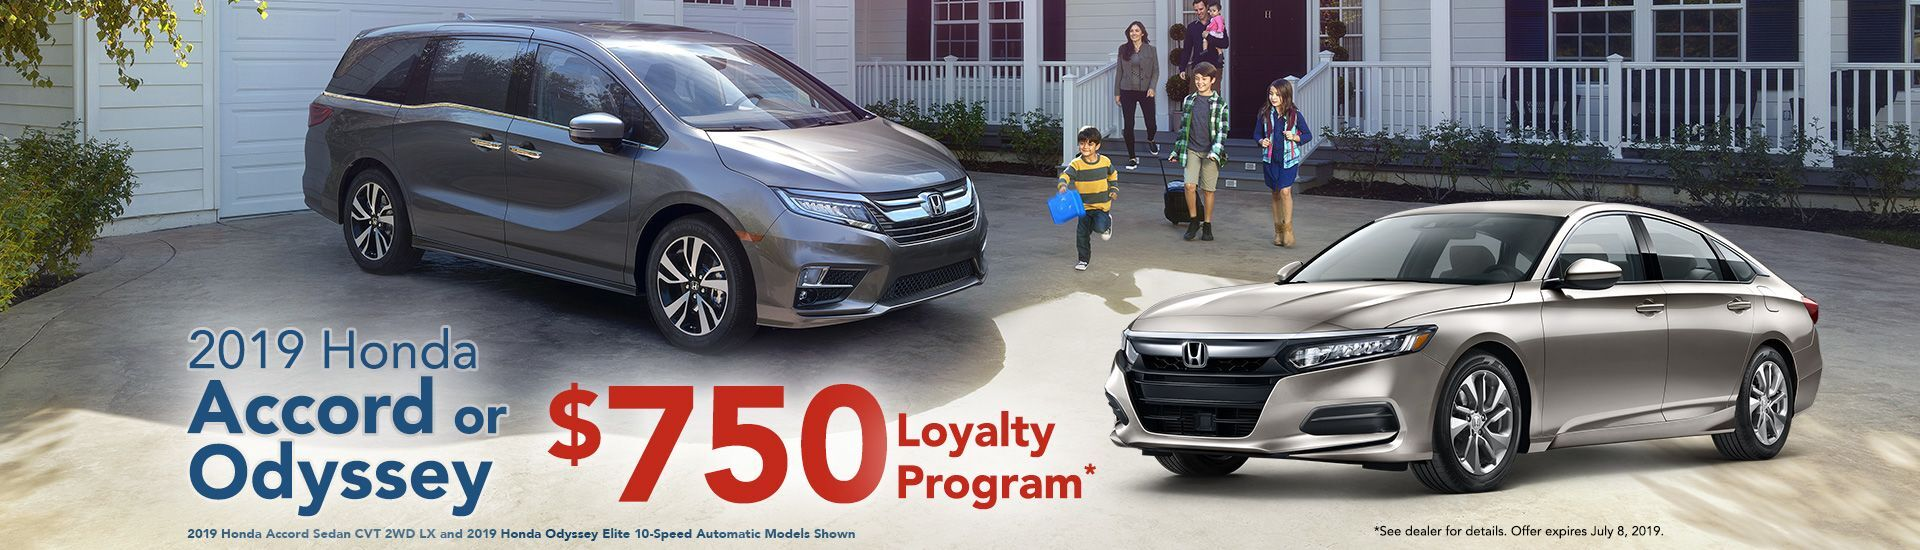 2019 Honda Loyalty Program